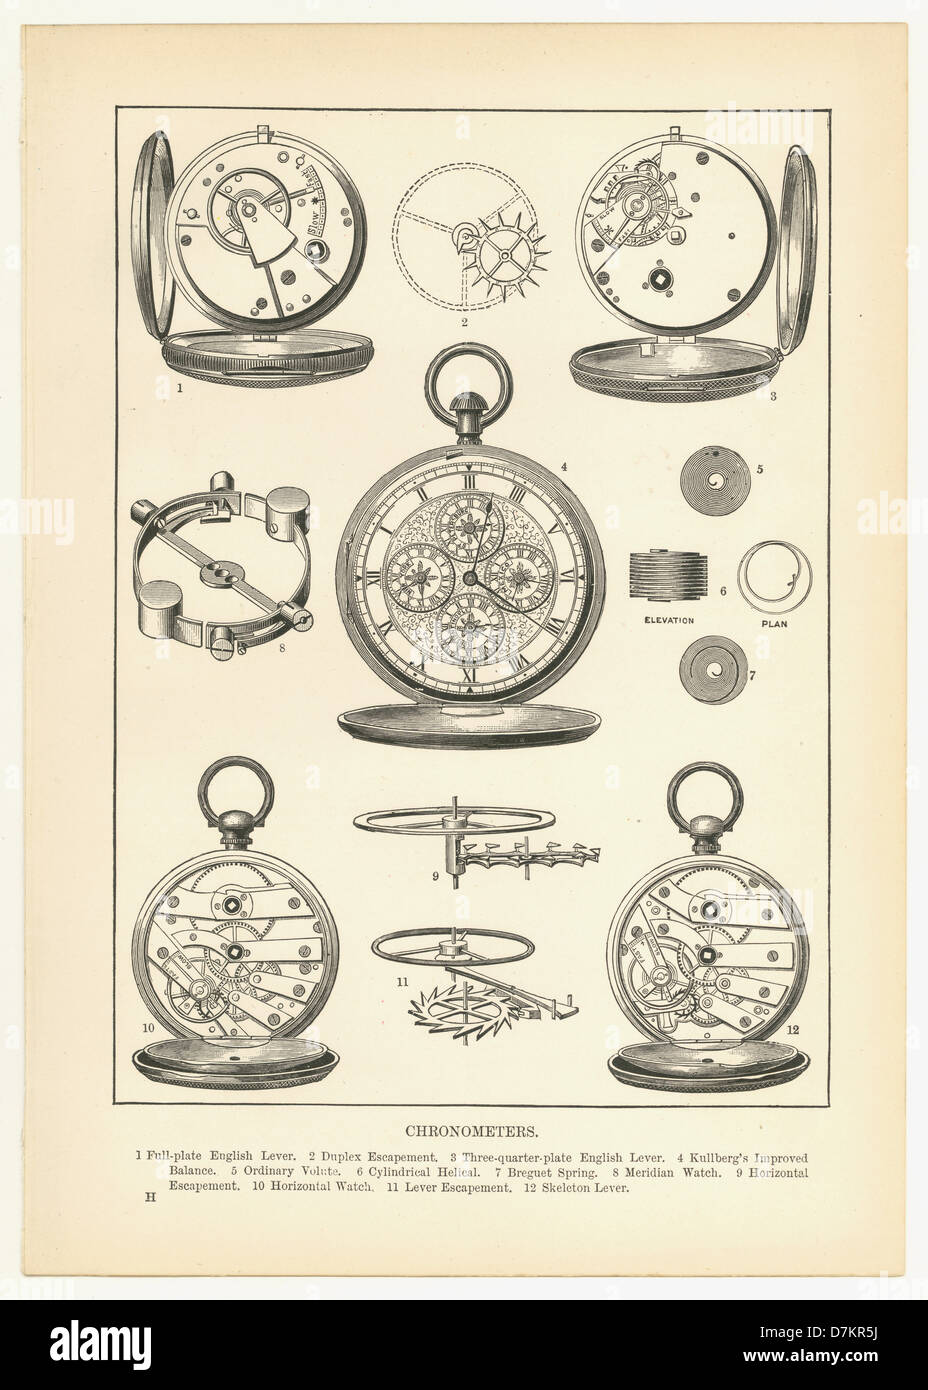 An engraved Illustration of Chronometers, early 1900's, U.K. - Stock Image